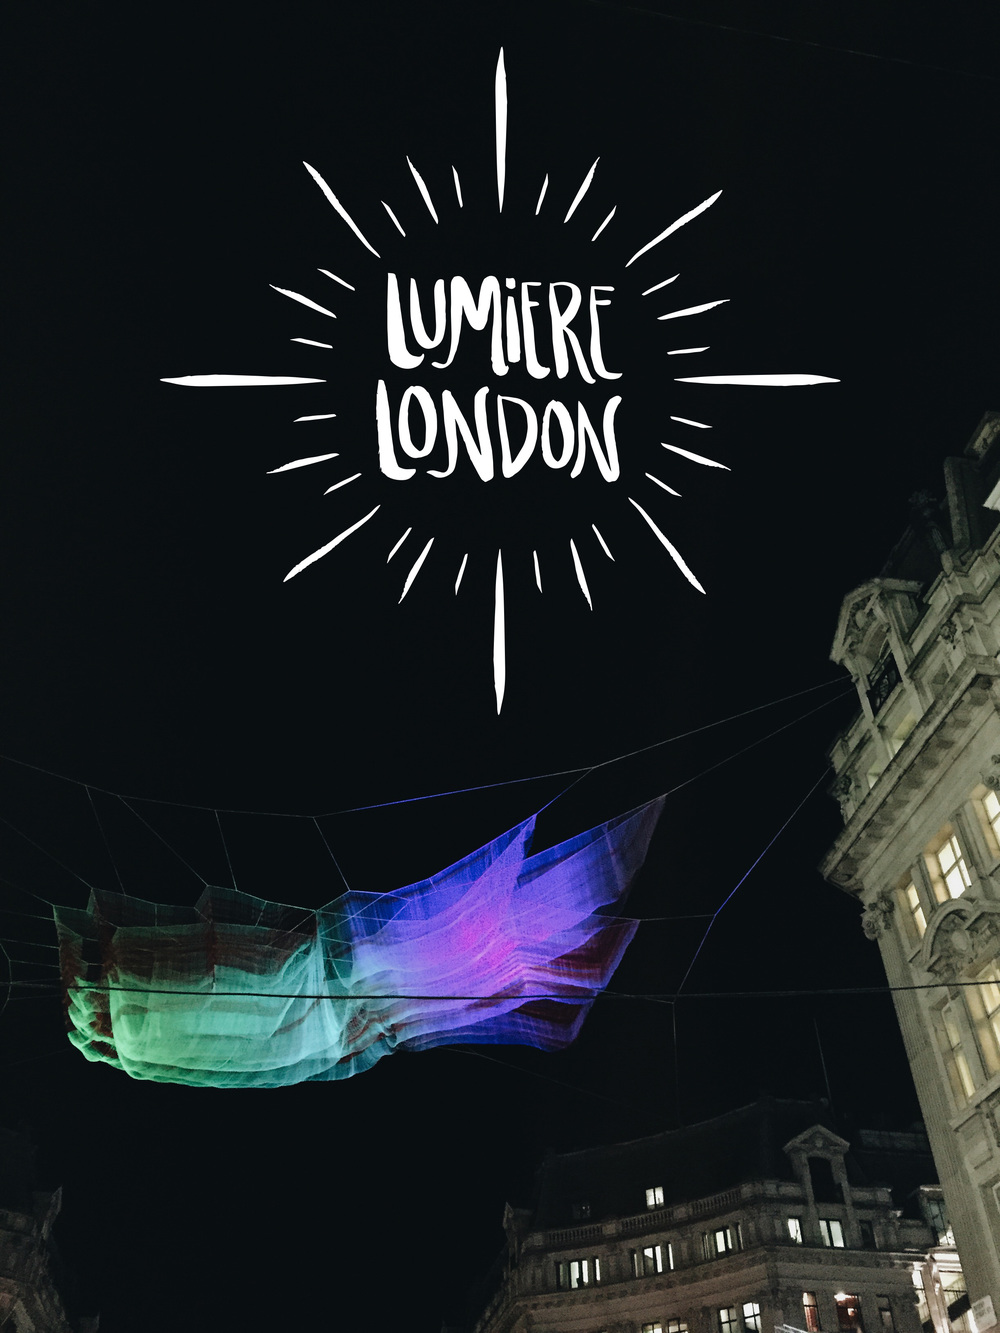 SOA_lumiere-london-2016.jpg